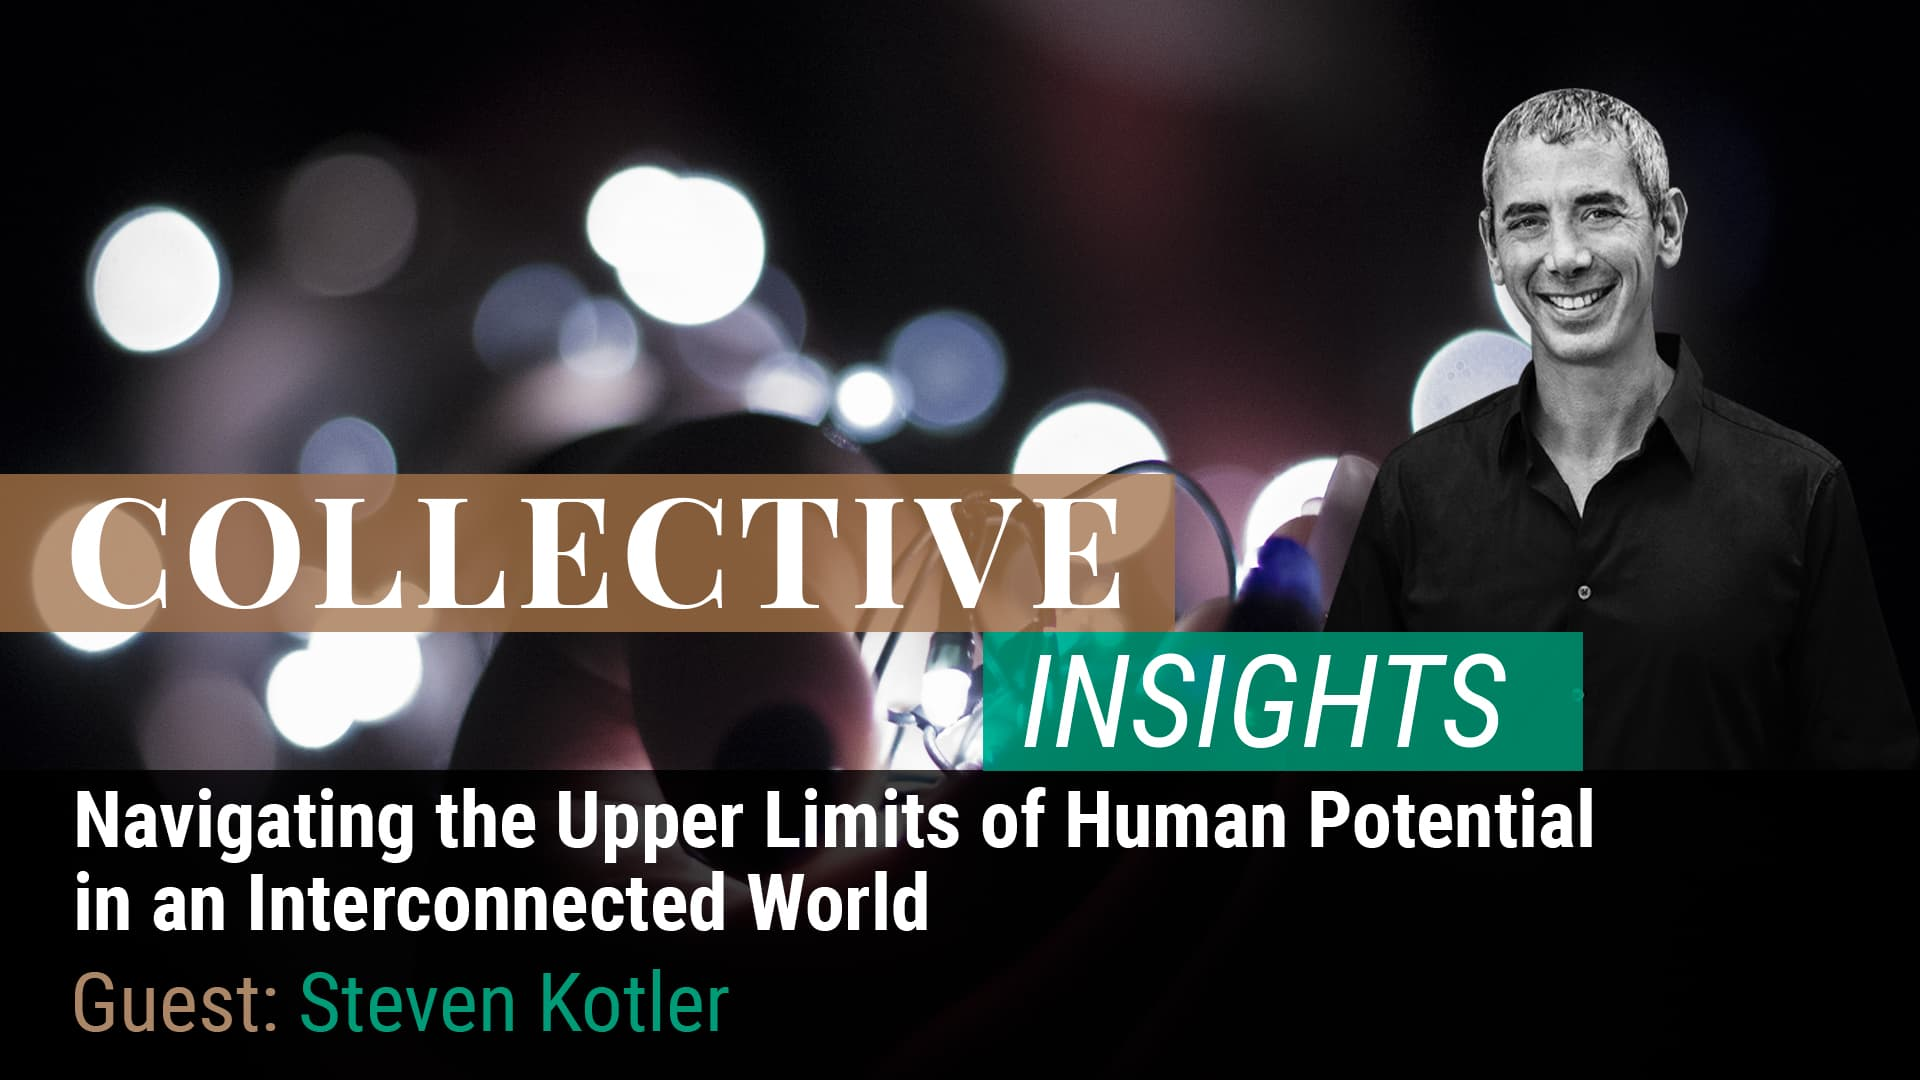 Navigating the Upper Limits of Human Potential in an Interconnected World